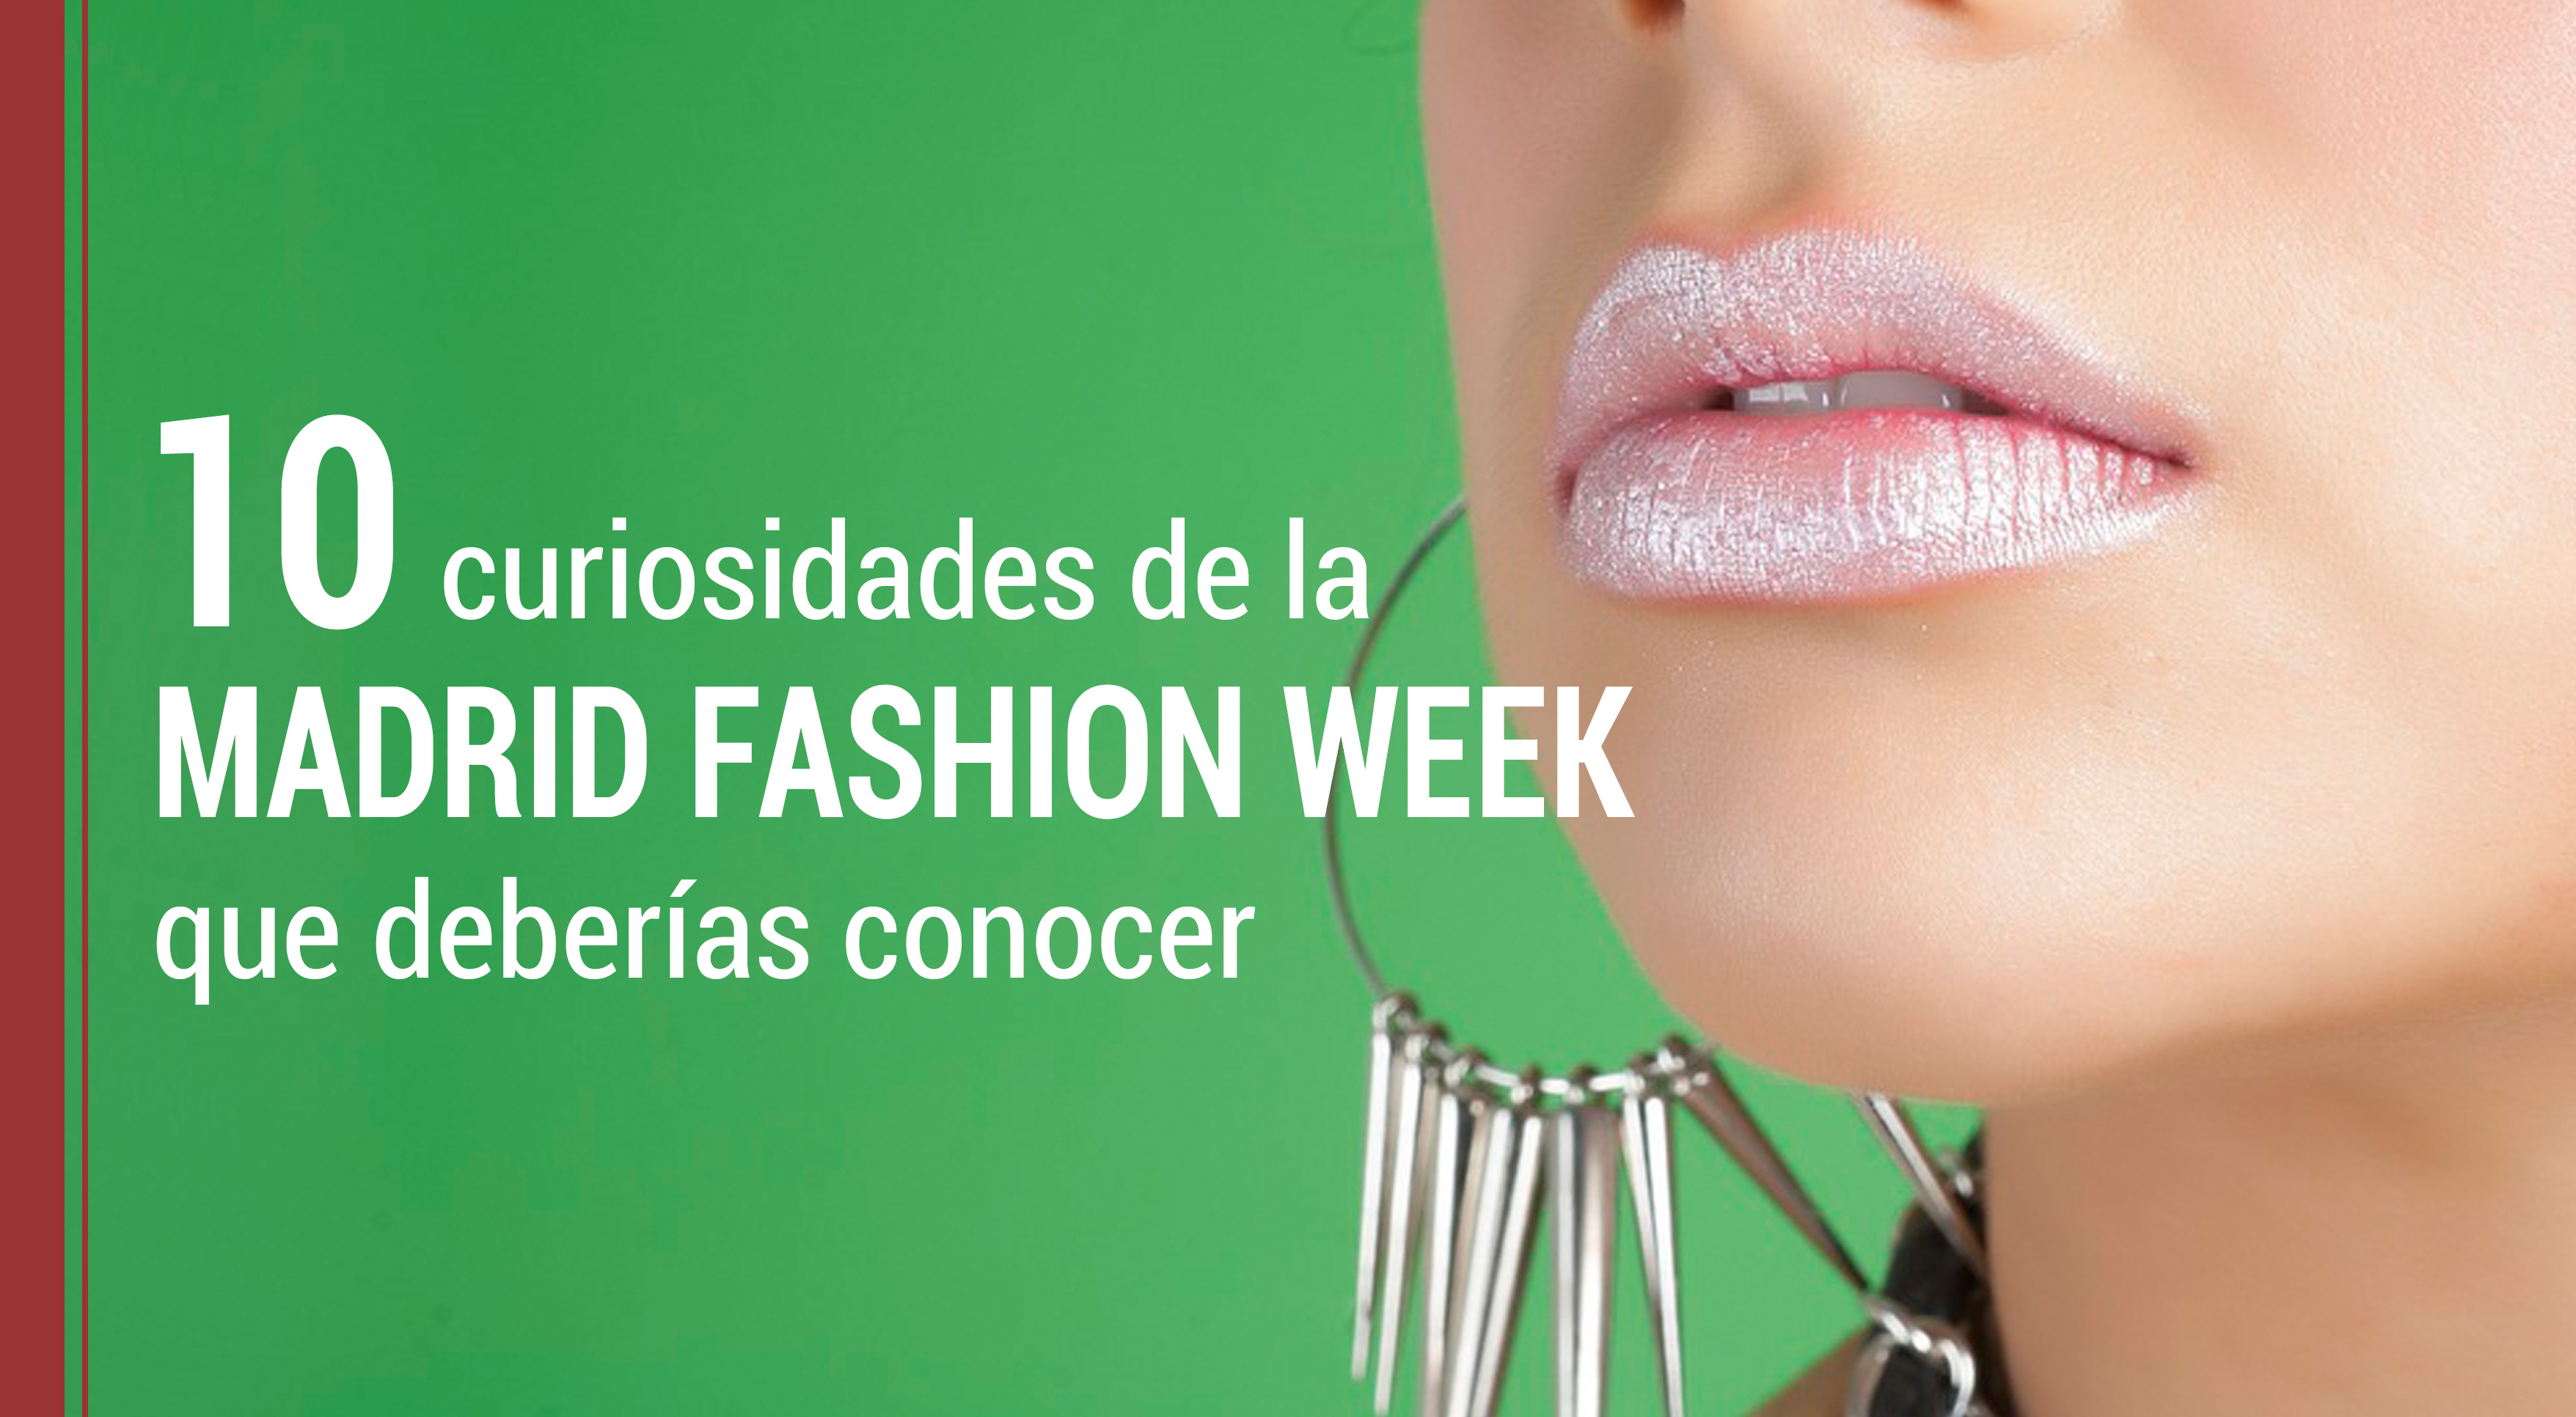 10 curiosidades Madrid Fashion Week